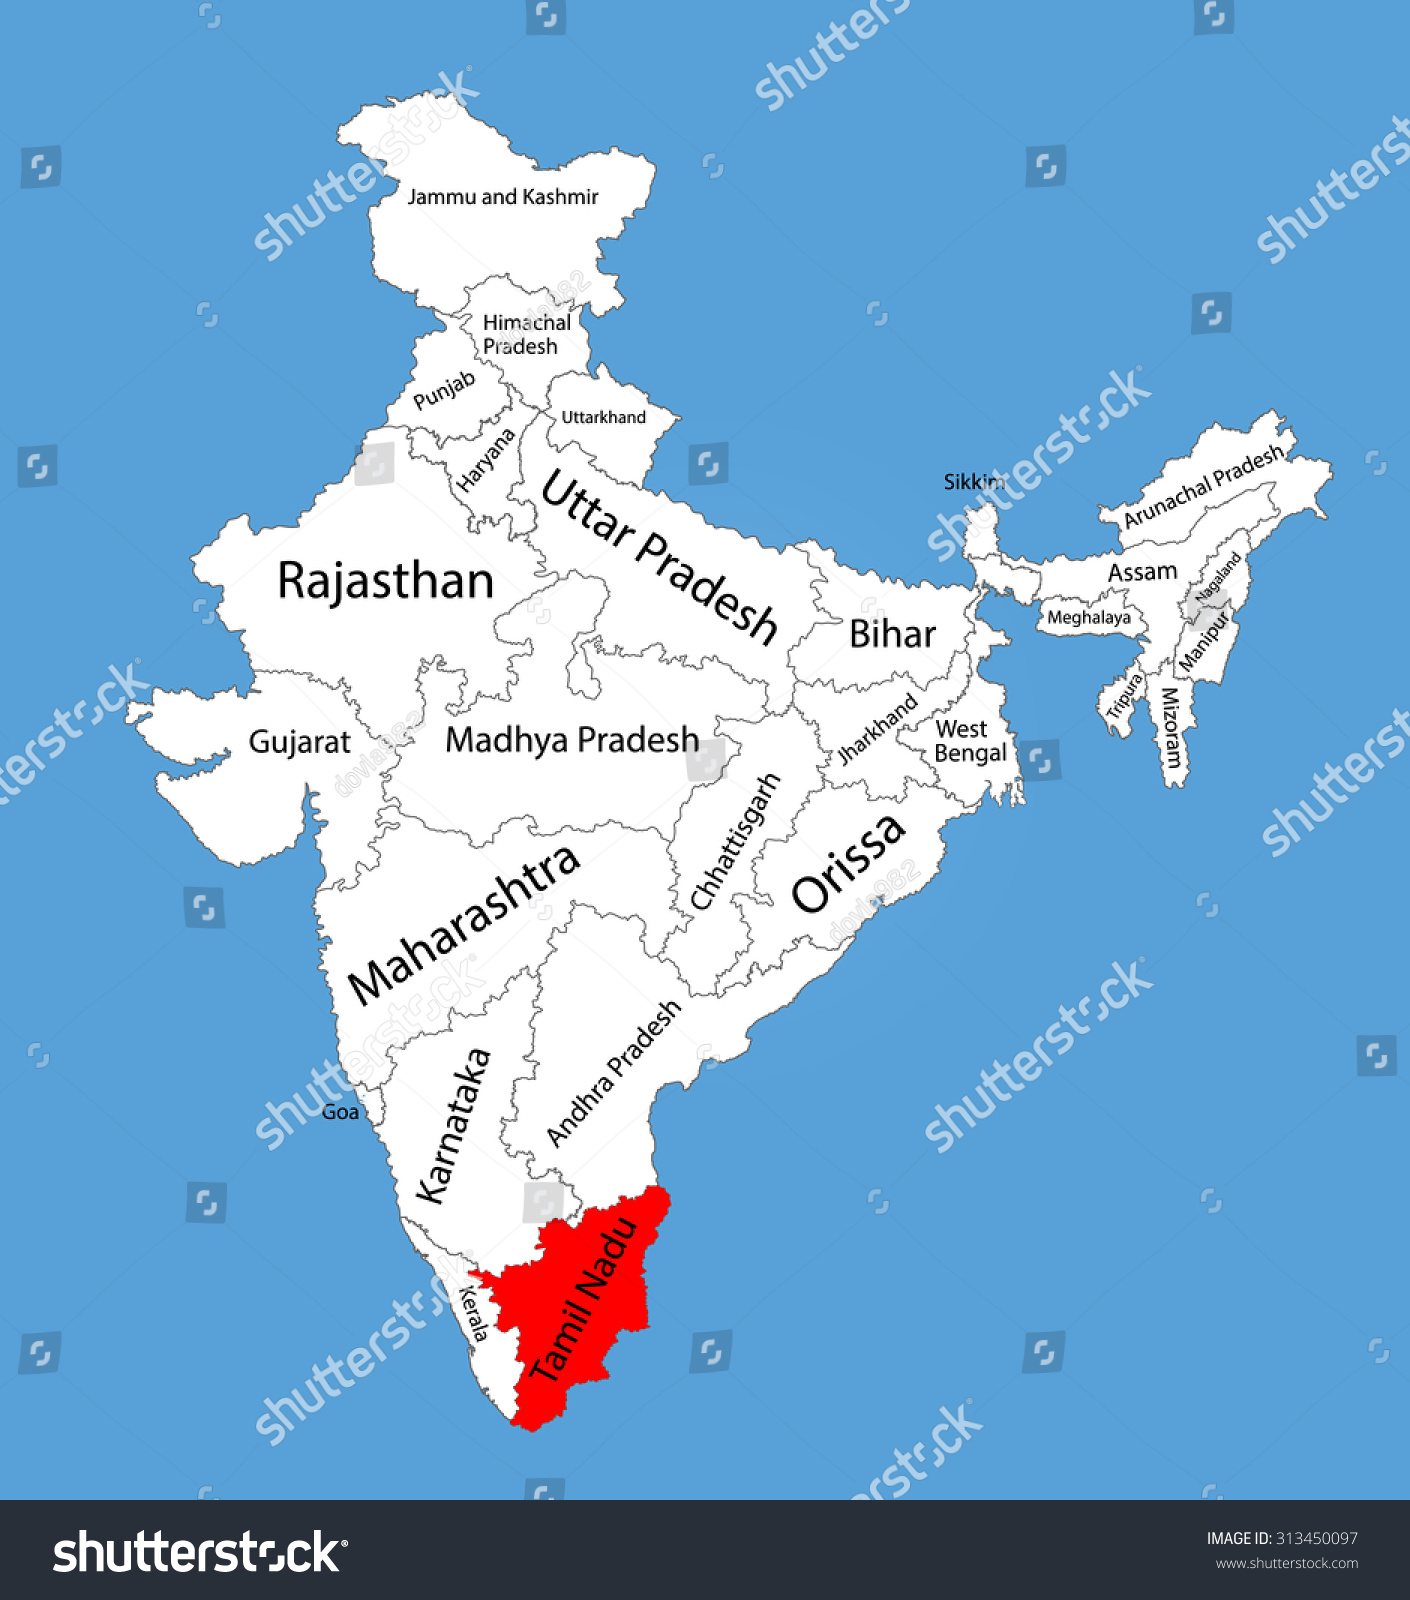 Tamil nadu state india vector map vectores en stock 313450097 tamil nadu state india vector map silhouette illustration isolated on india map editable gumiabroncs Choice Image